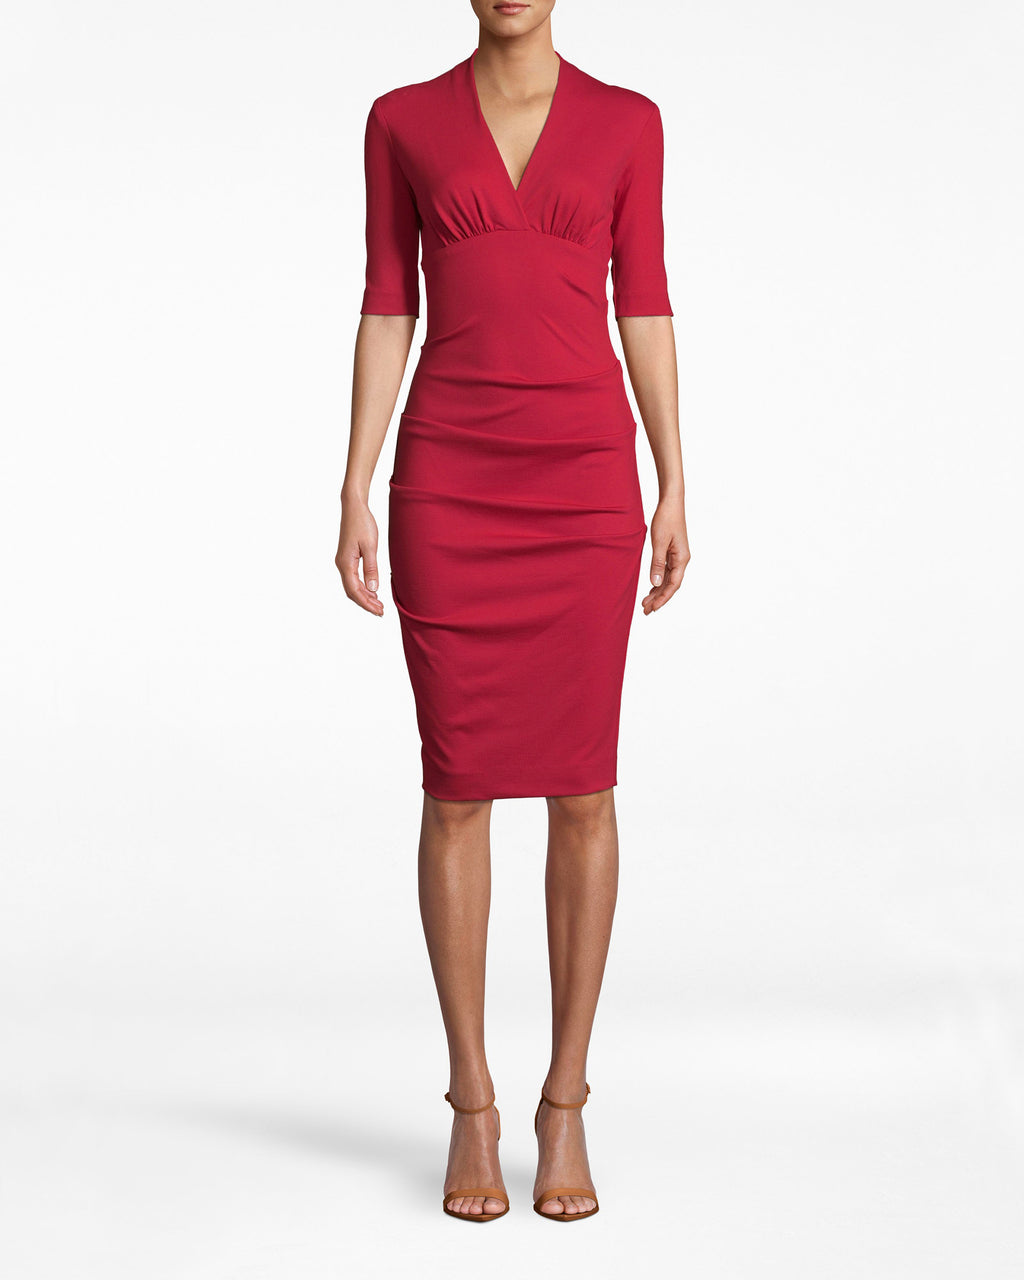 BH10200 - PONTE SOLID PONTE DRESS - dresses - midi - Office upgrade. This 3/4 sleeve dress emphasizes your bodice with its deep v neck and collared neckline. The ruched skirt adds a note of sexy to a staple silhouette. Exposed back zipper for closure.